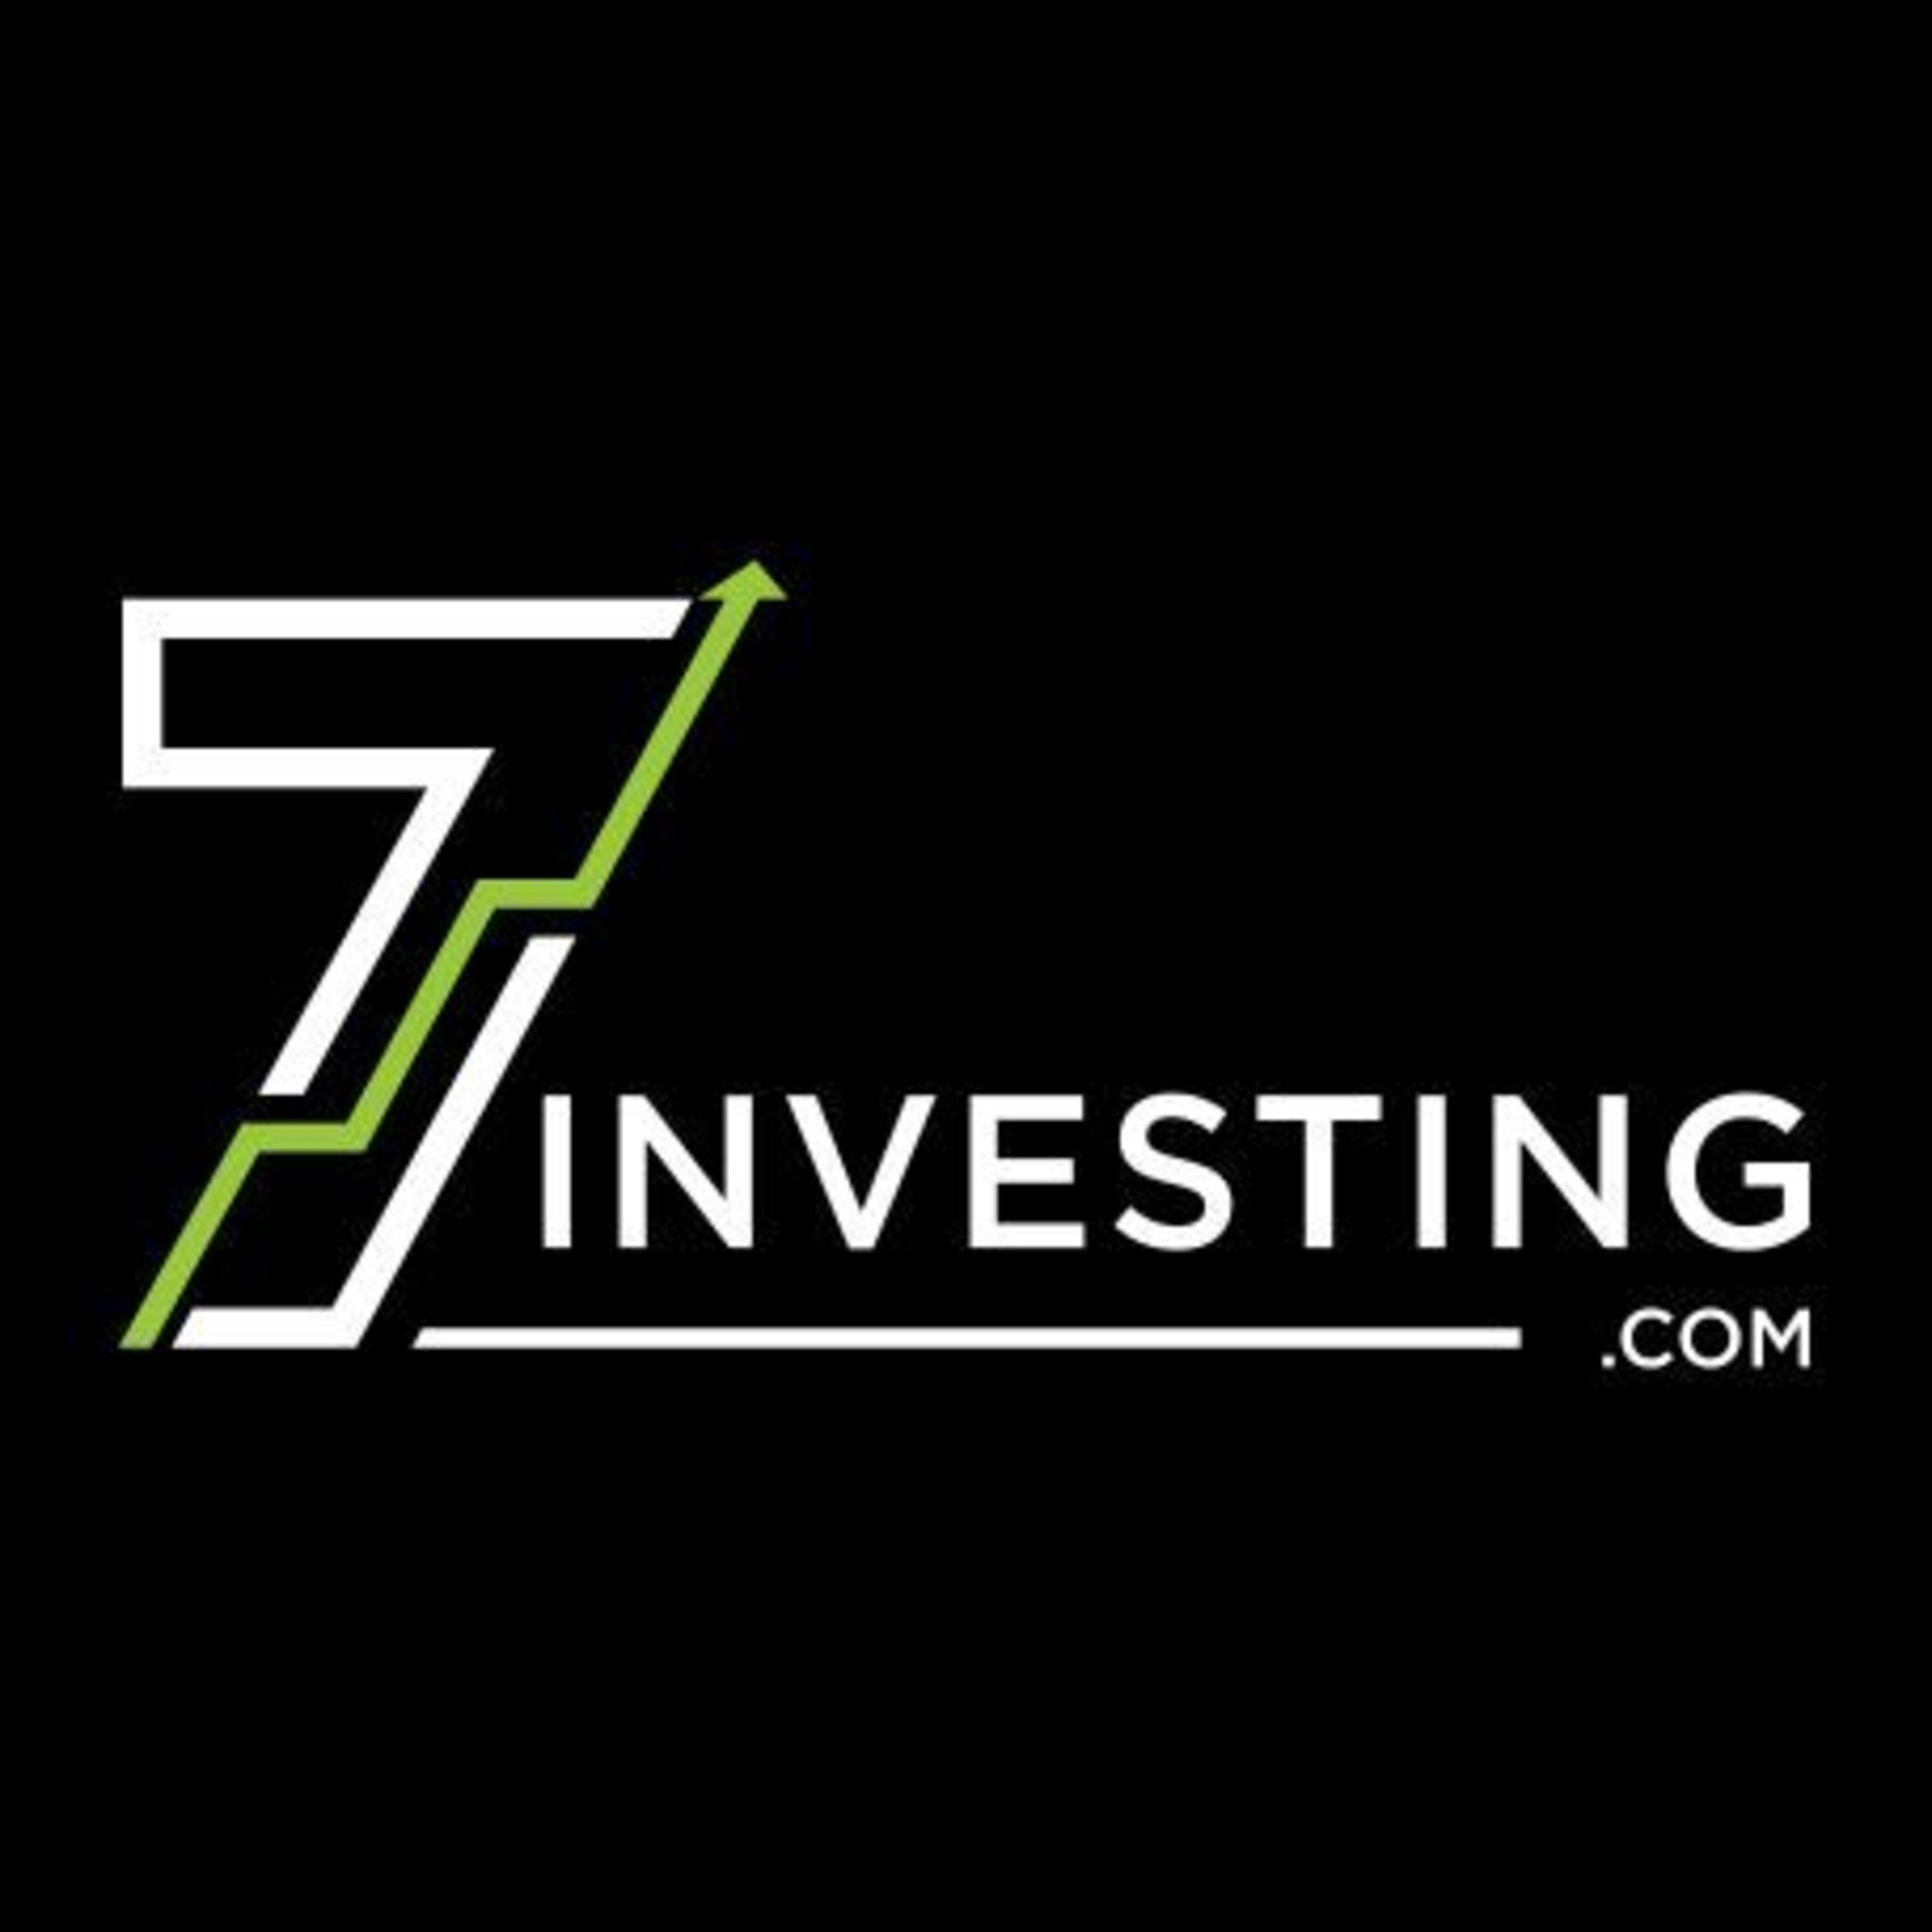 The 7investing Podcast